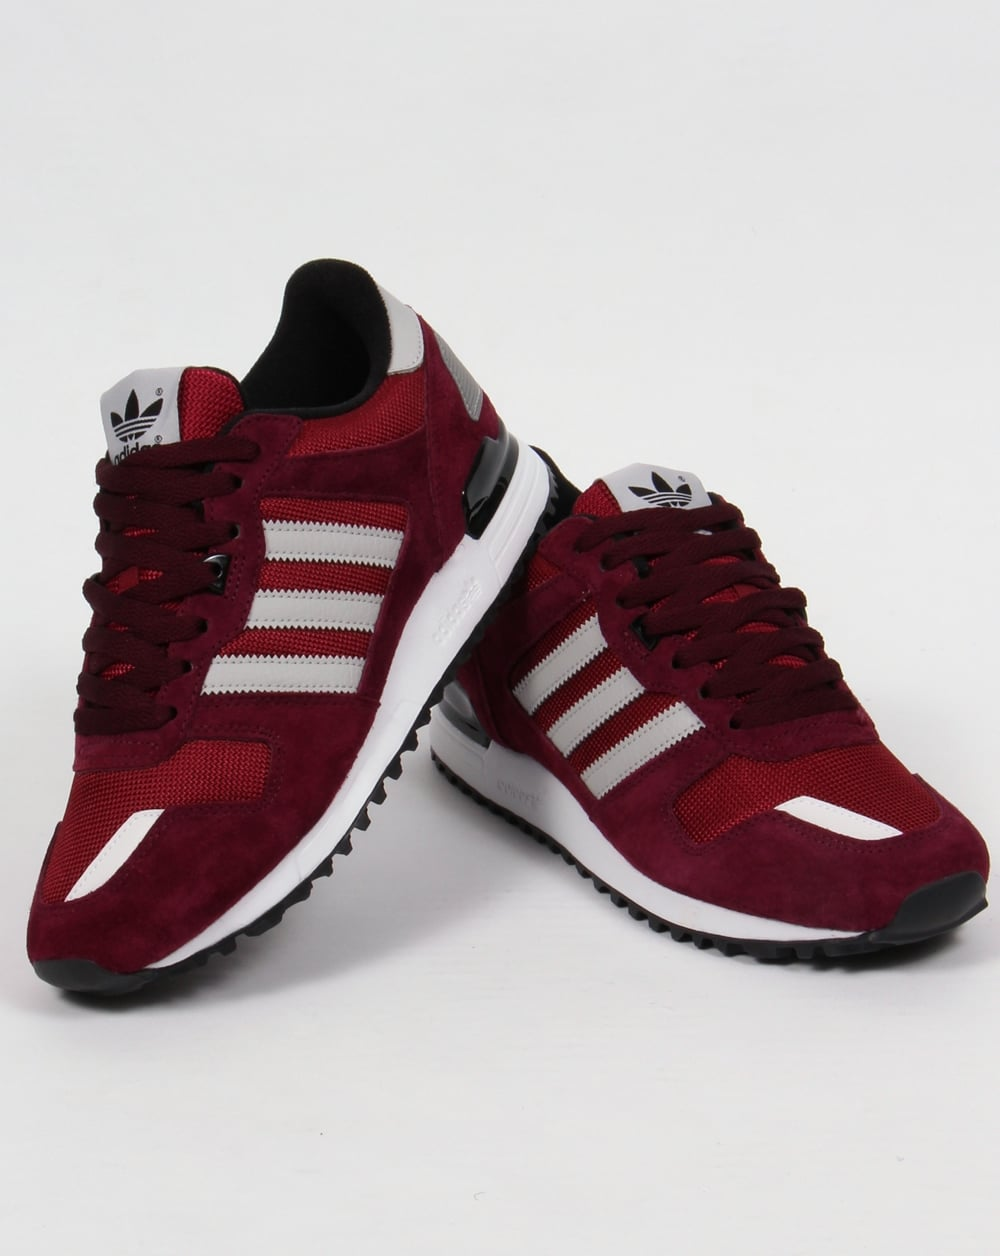 new product 7364b b3fdc ... aliexpress adidas zx 700 trainers burgundy grey black 9325a 60f3b ...